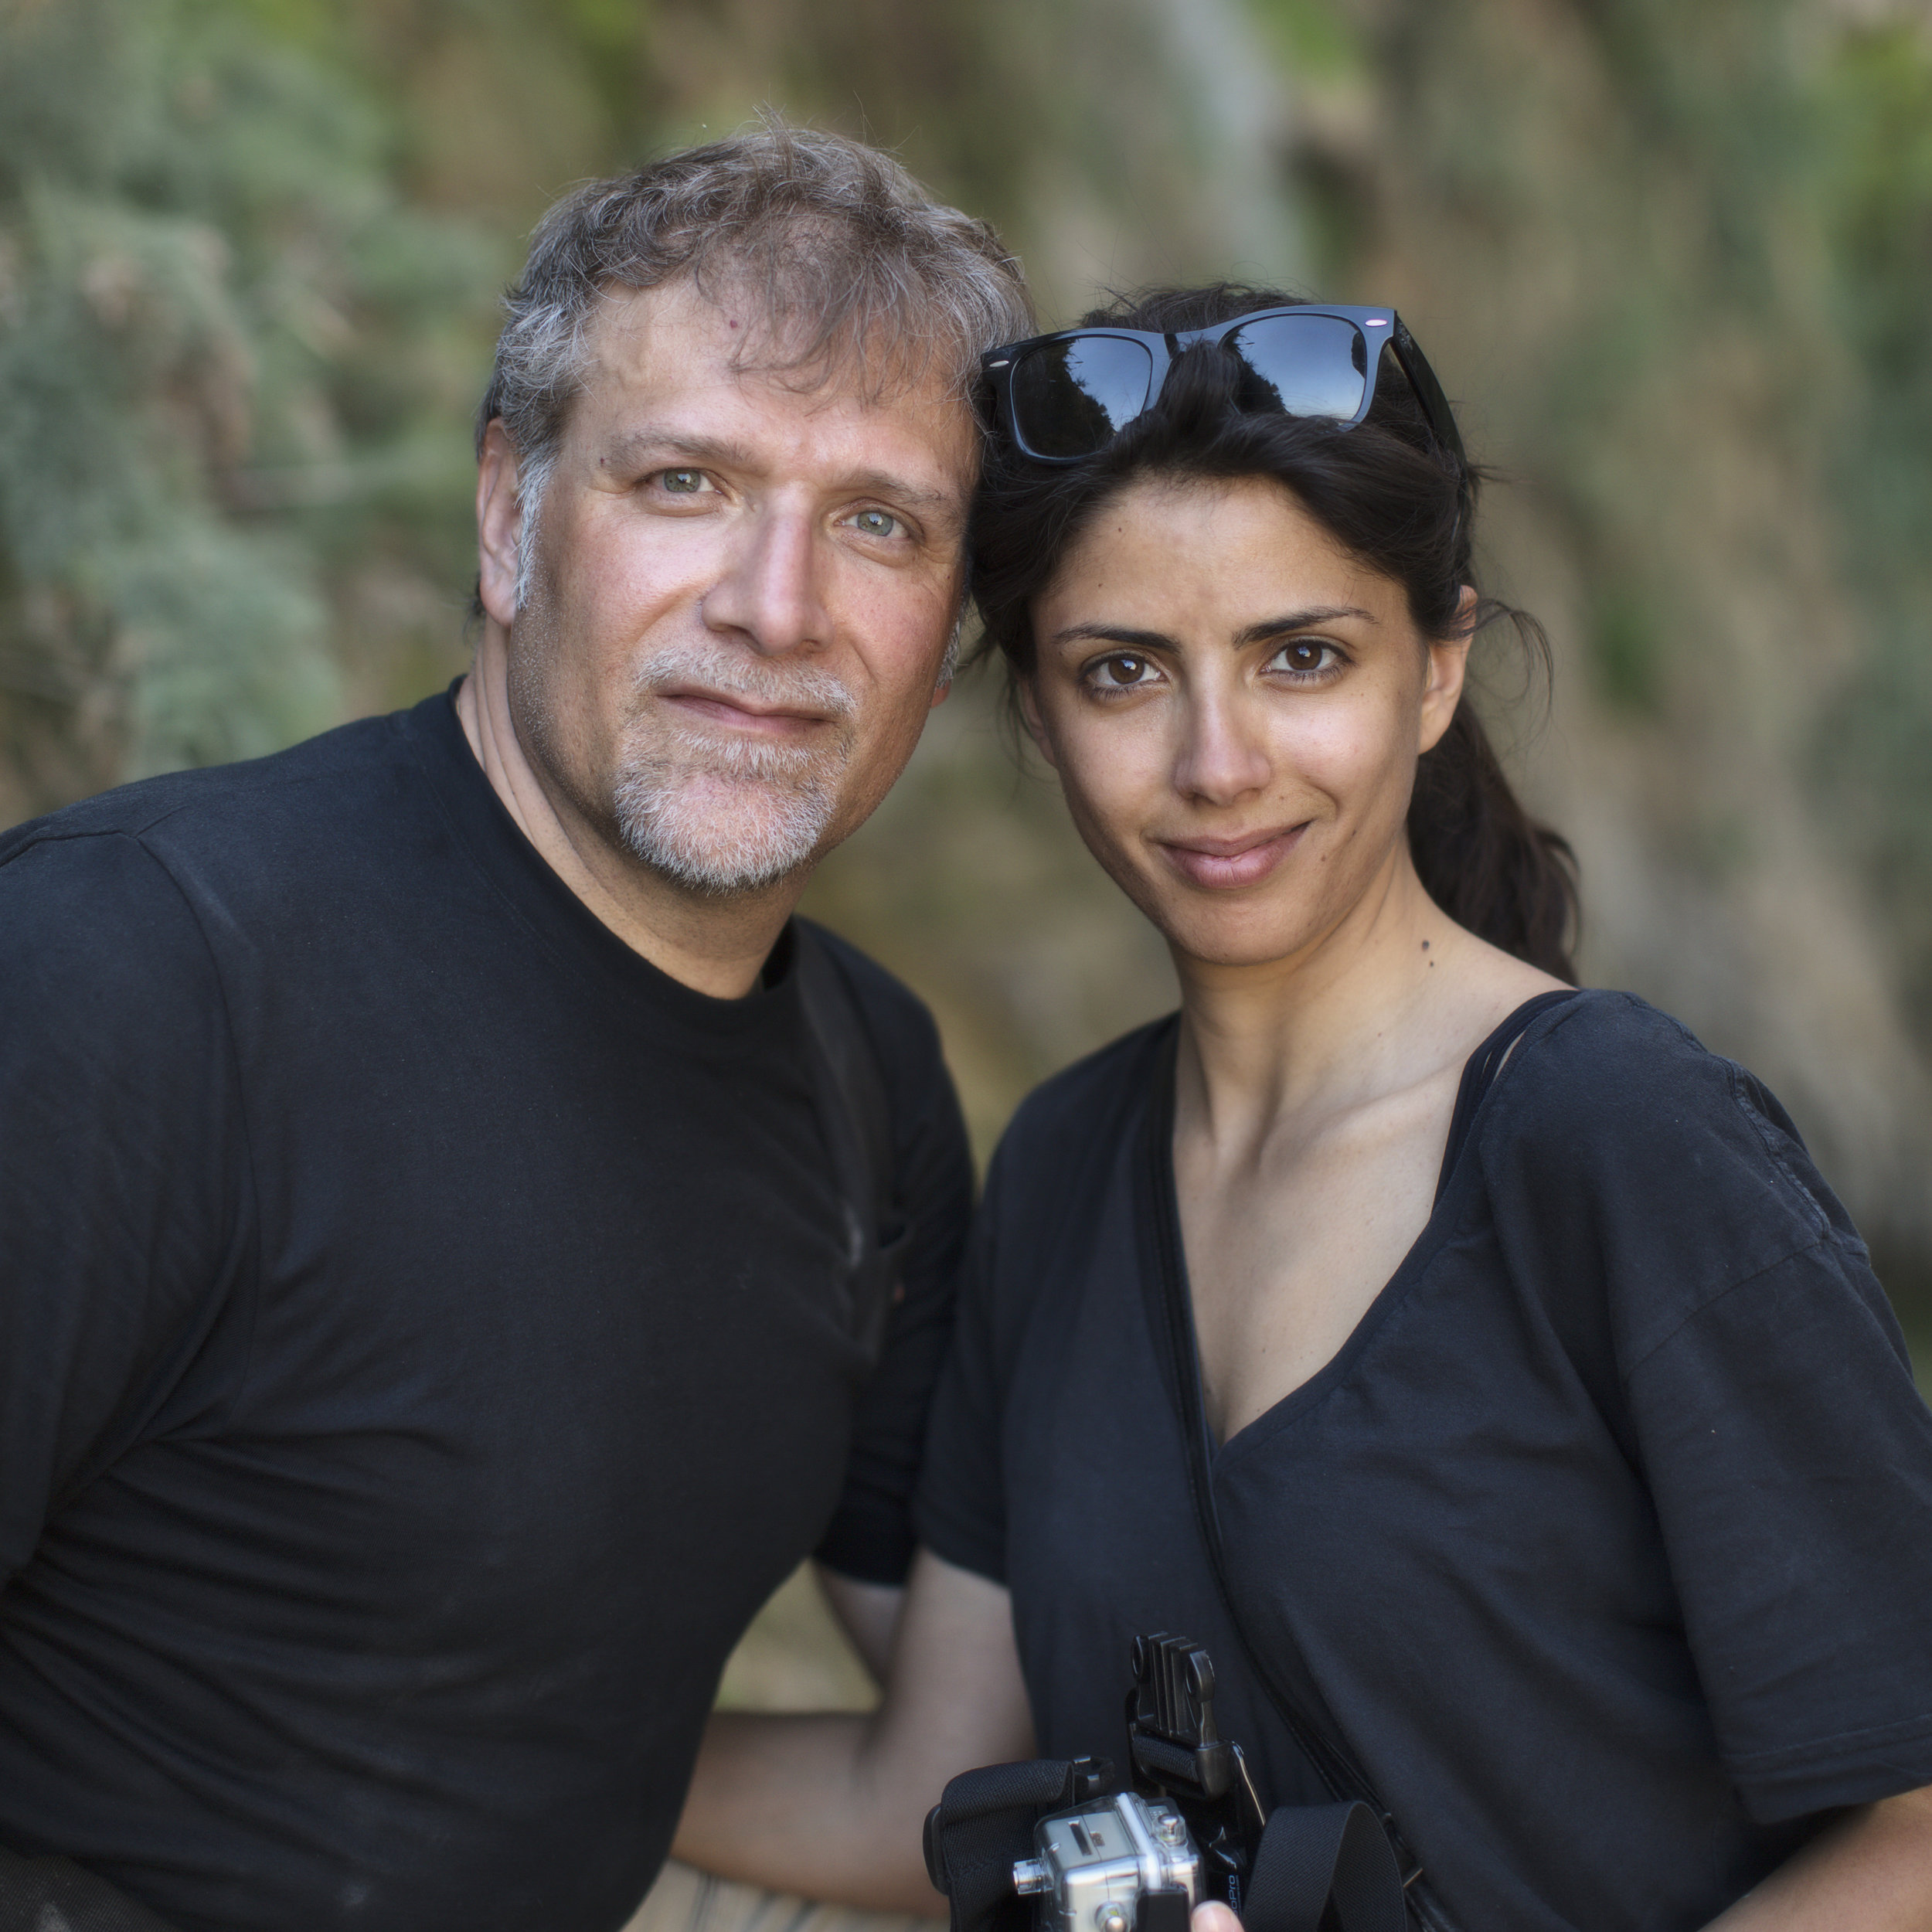 Nico & Stephanie on location in Israel